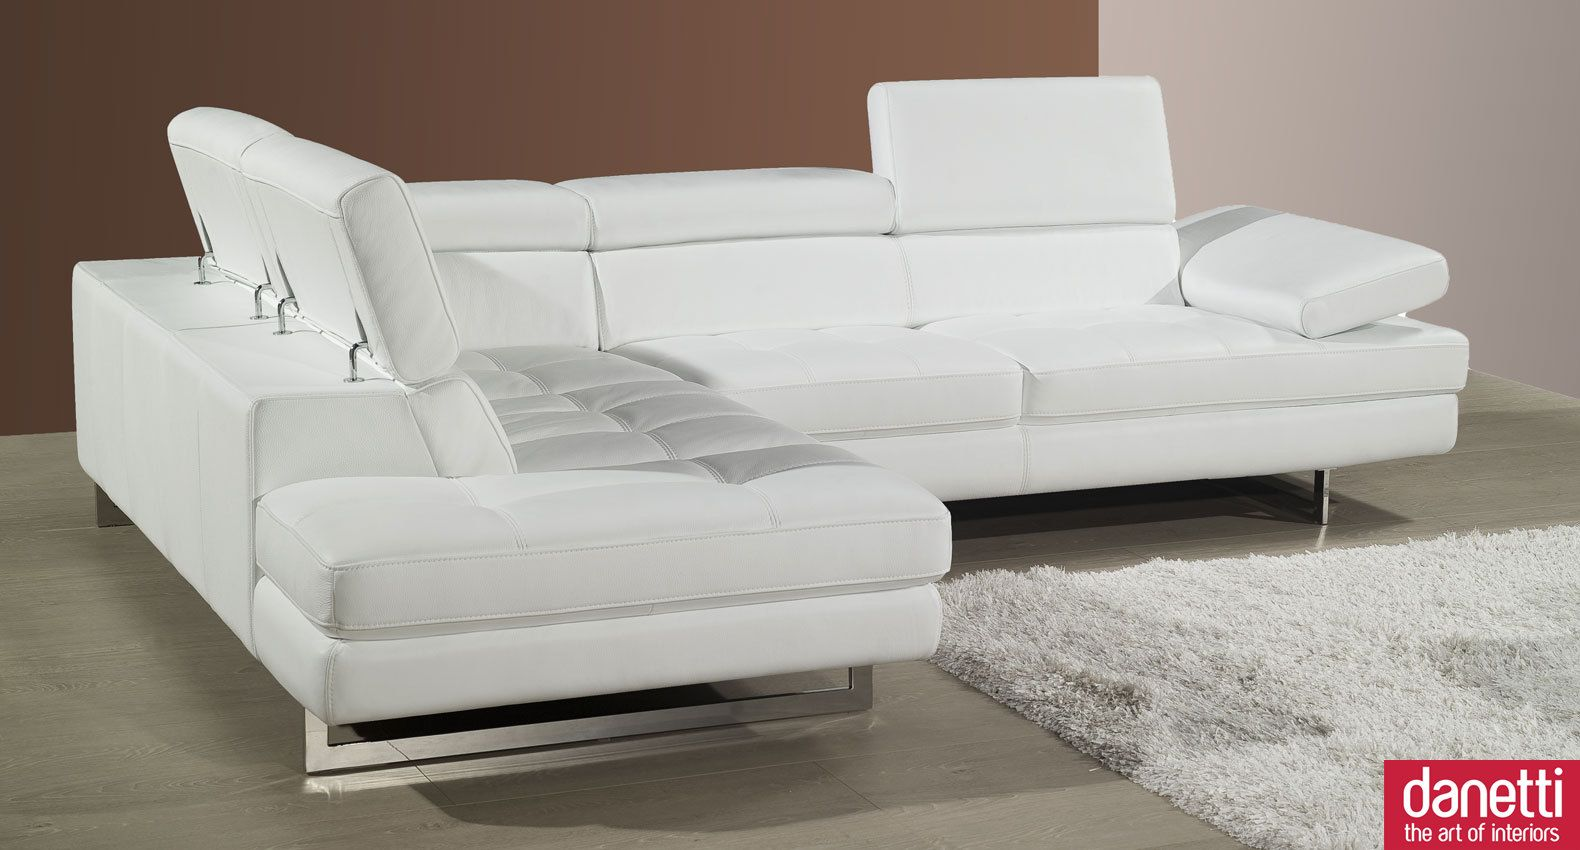 Modern White Leather Couchimage Gallery Image